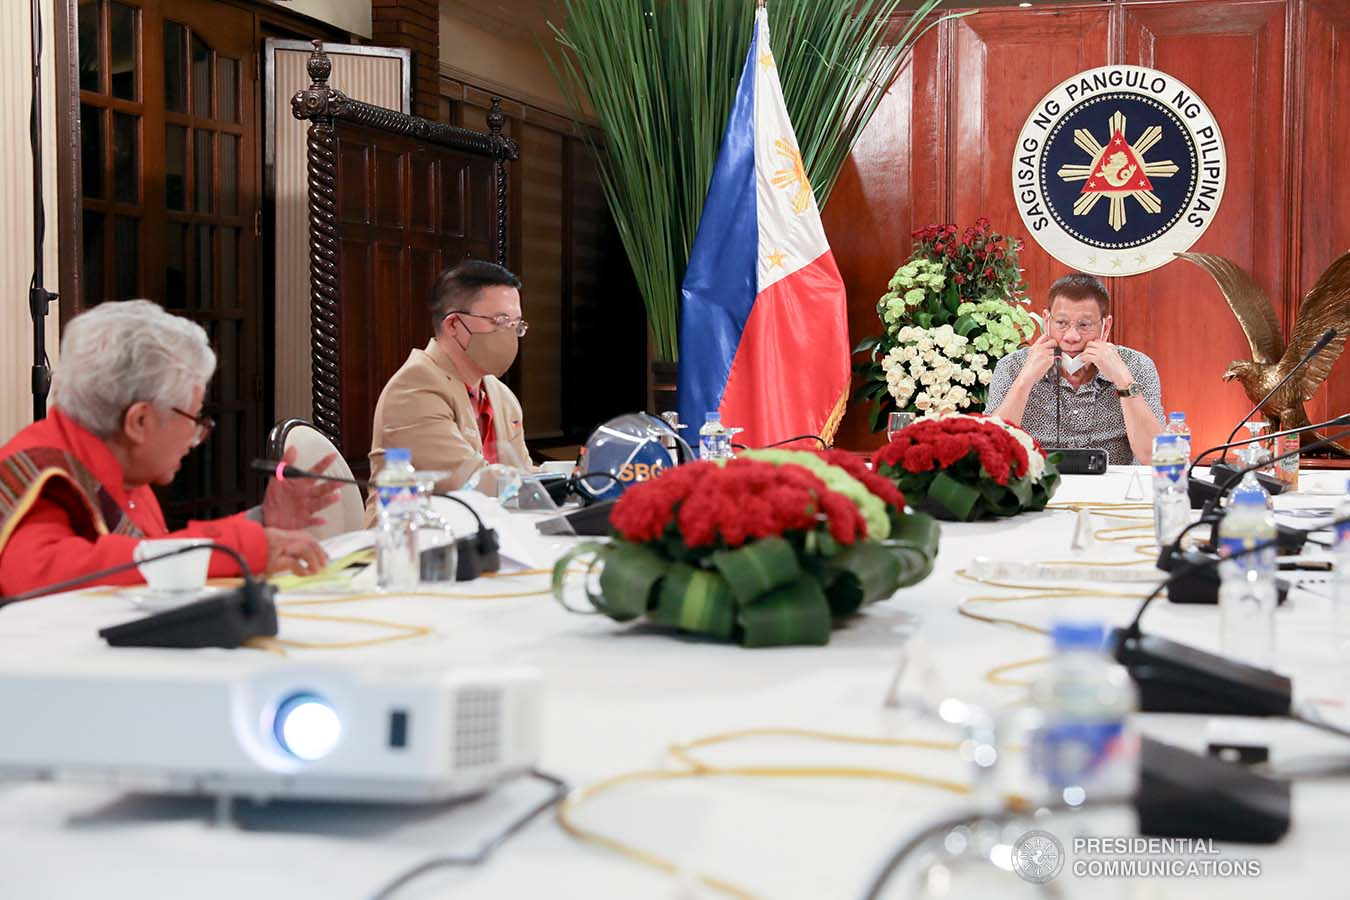 President Rodrigo Roa Duterte confers with Education Secretary Leonor Briones during a meeting with the Inter-Agency Task Force on the Emerging Infectious Diseases (IATF-EID) core members at the Malago Clubhouse in Malacañang on August 31, 2020. TOTO LOZANO/PRESIDENTIAL PHOTO